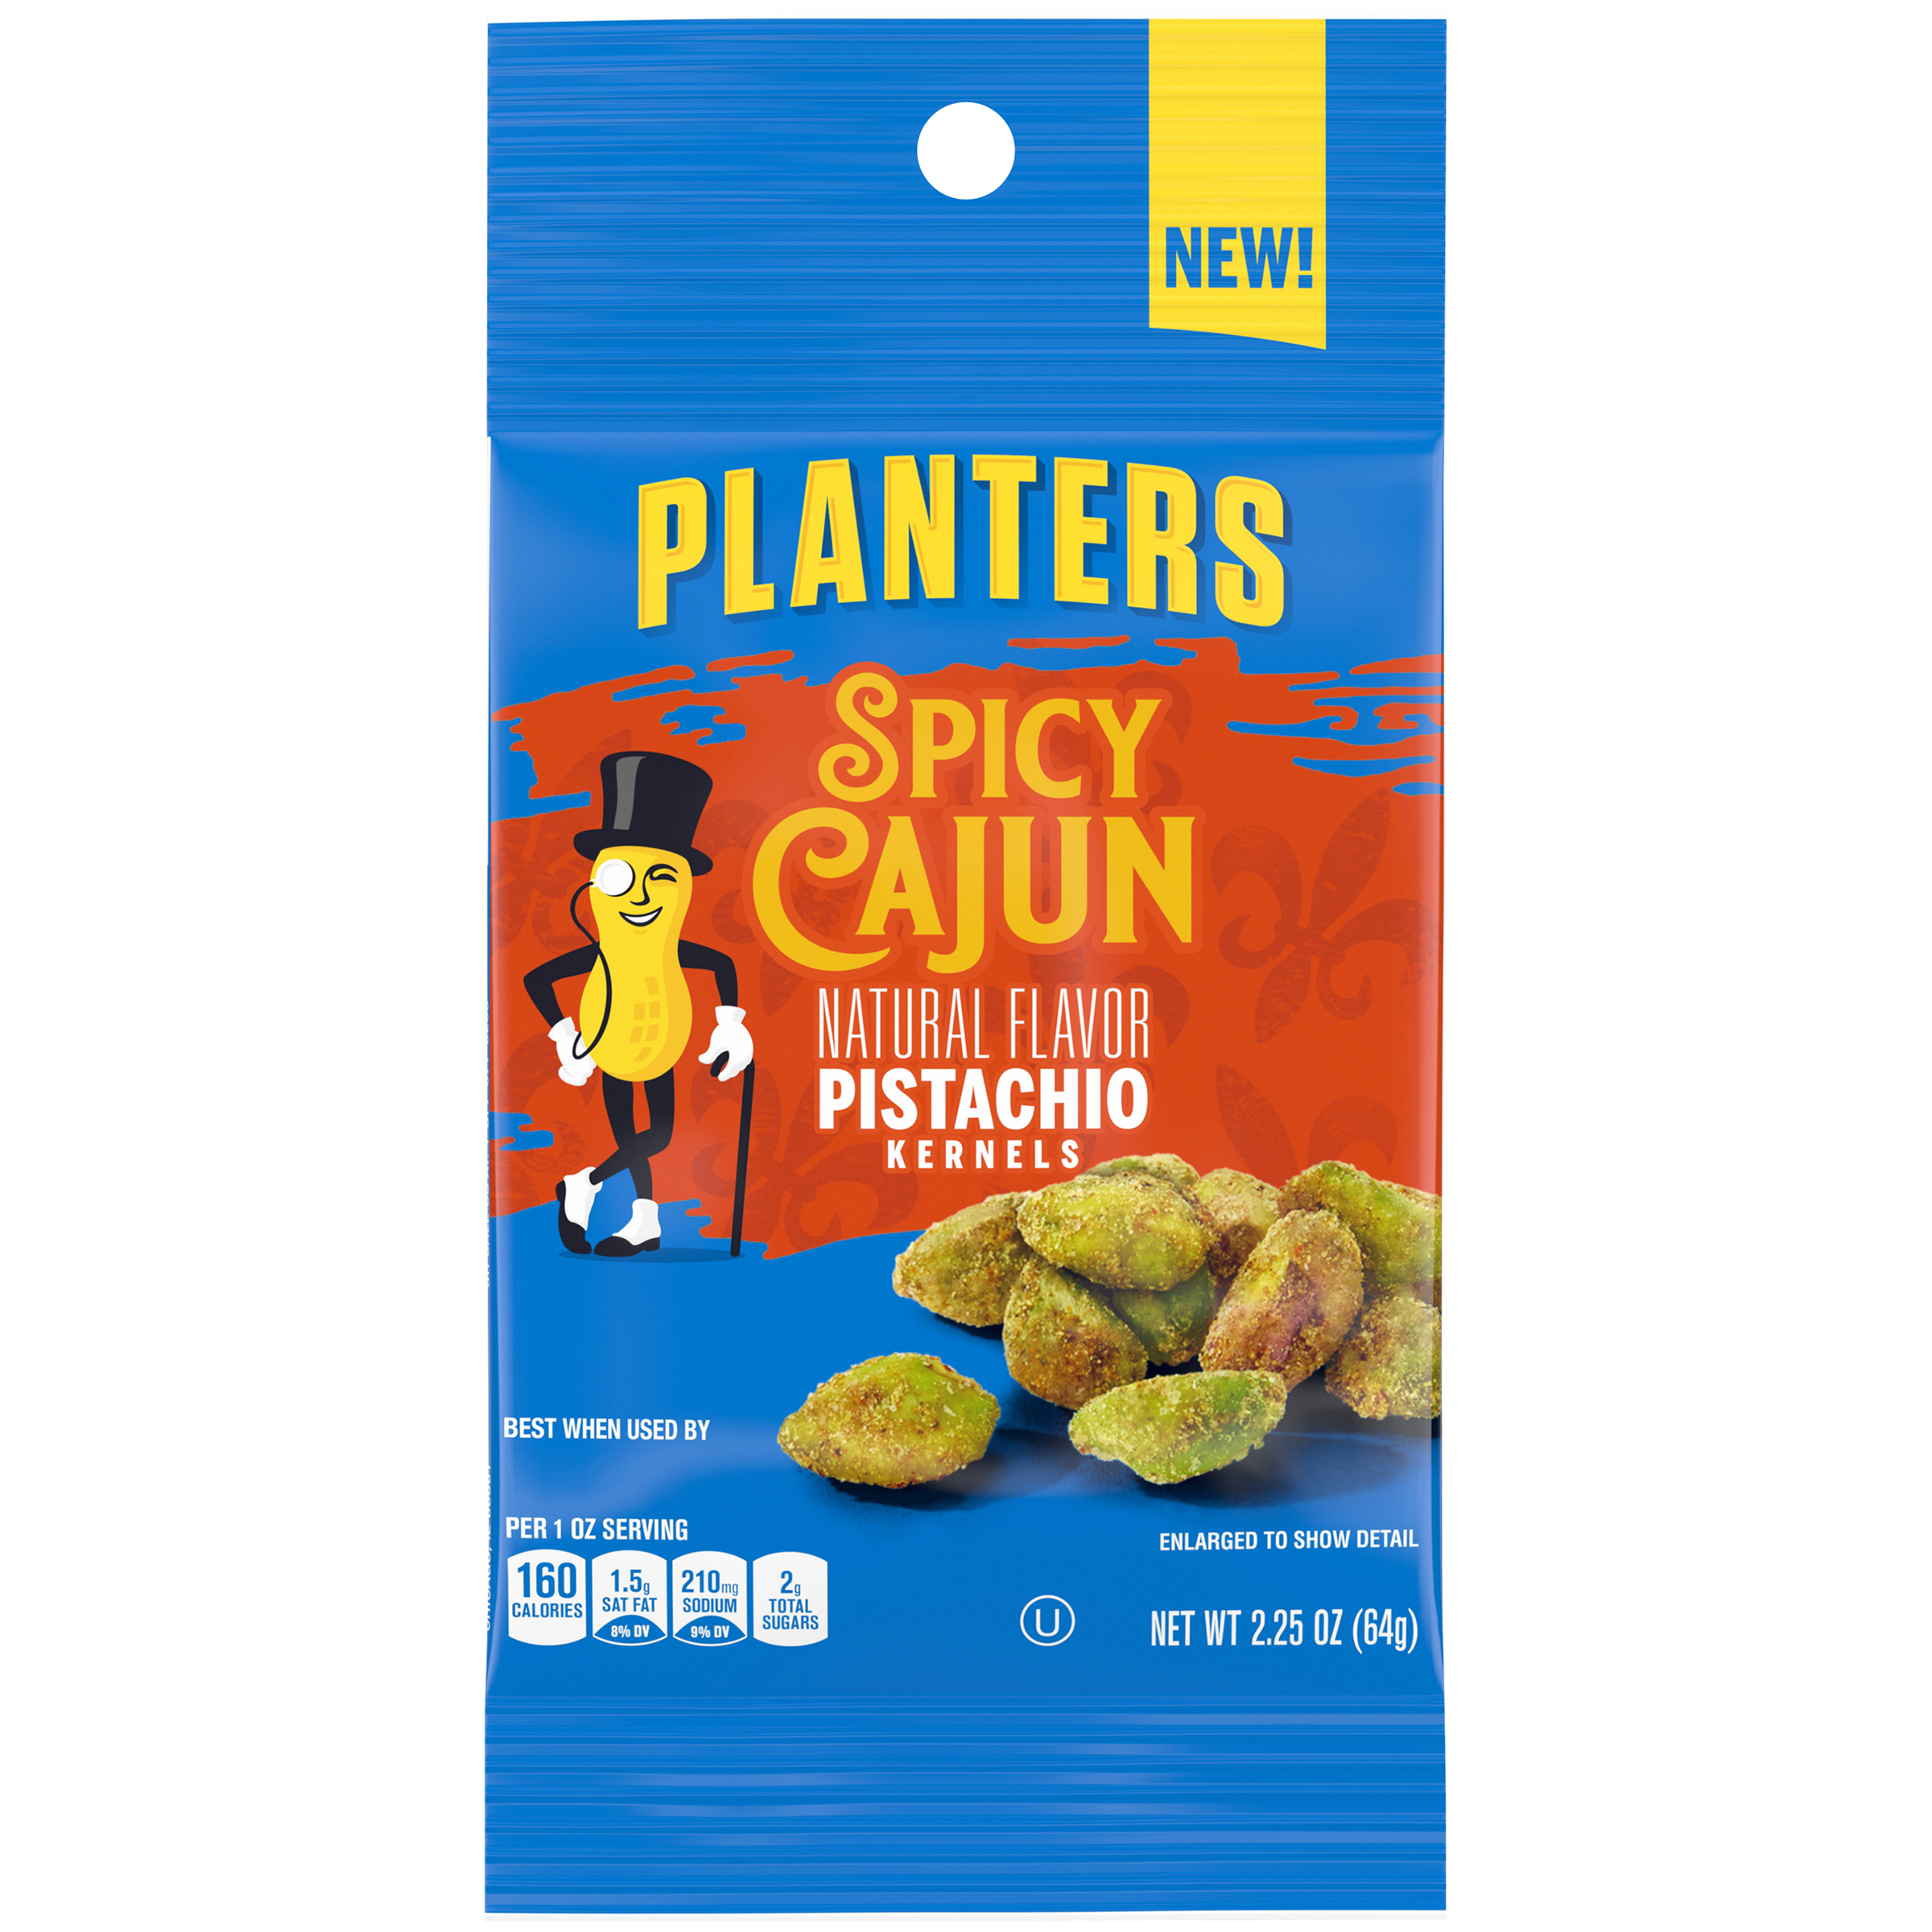 Planters Spicy Cajun Pistachios, 2.25 oz Packet image